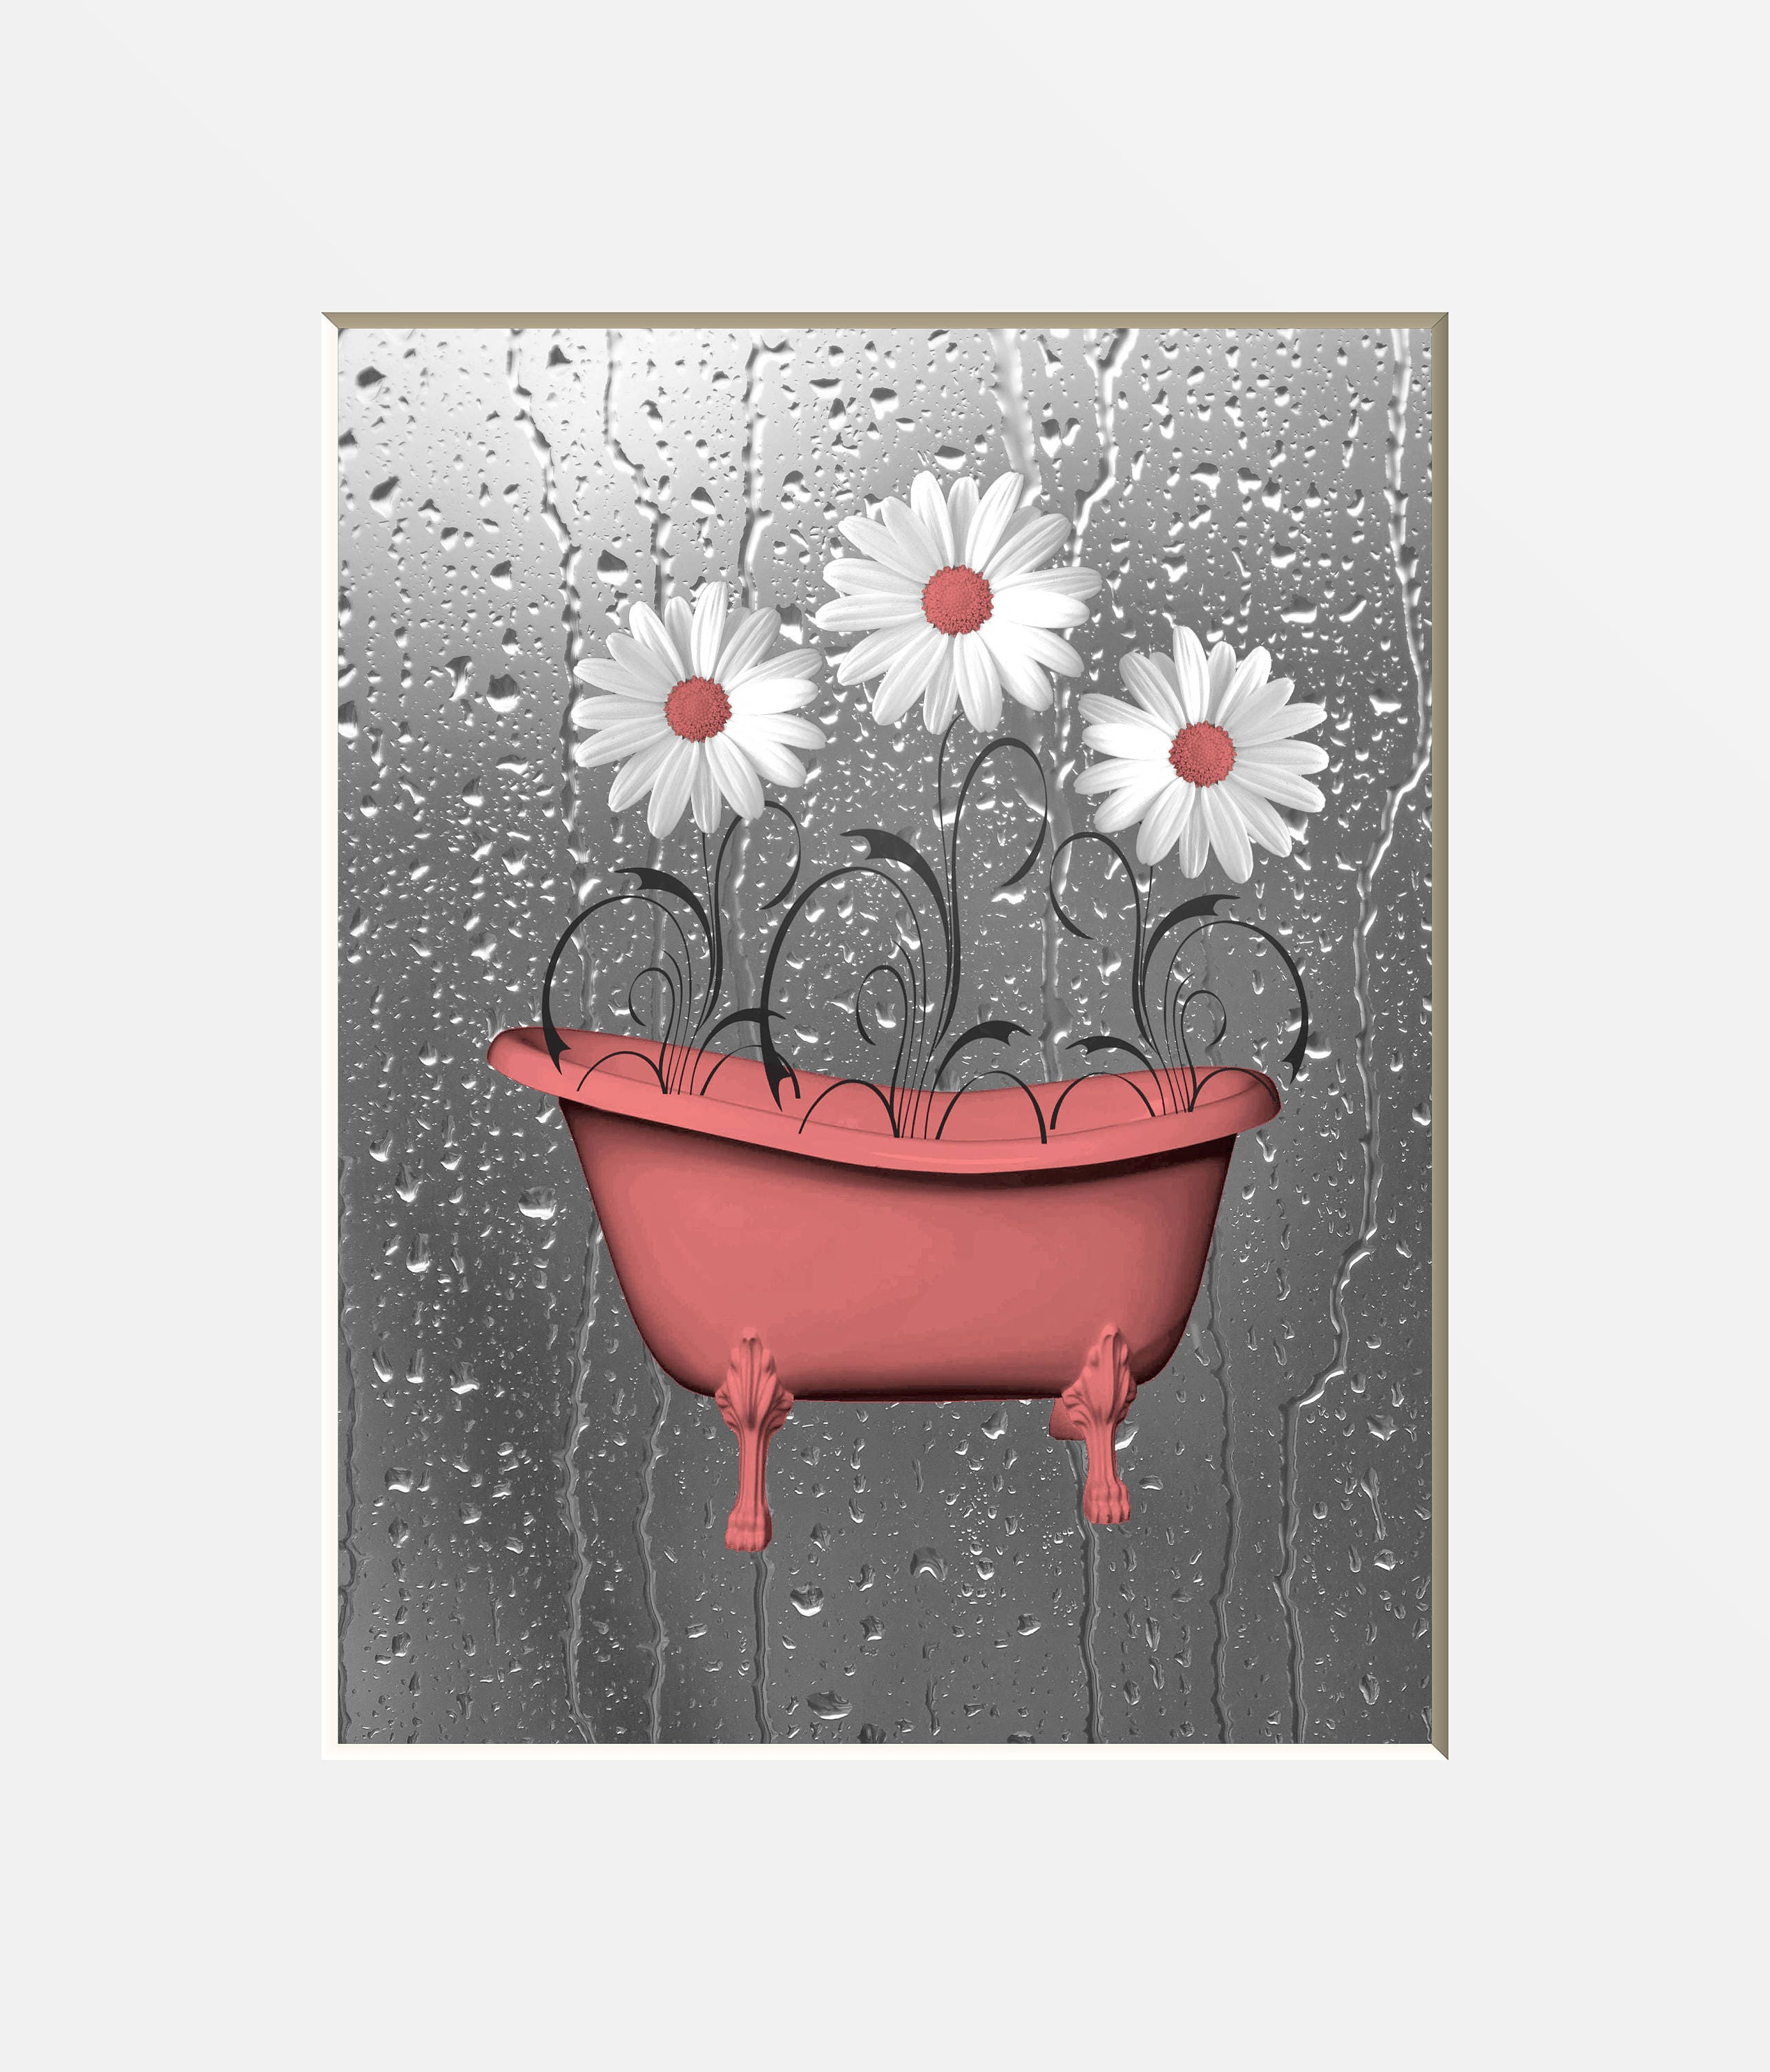 Coral Gray Bathroom Wall Art Pictures. Daisy Flowers